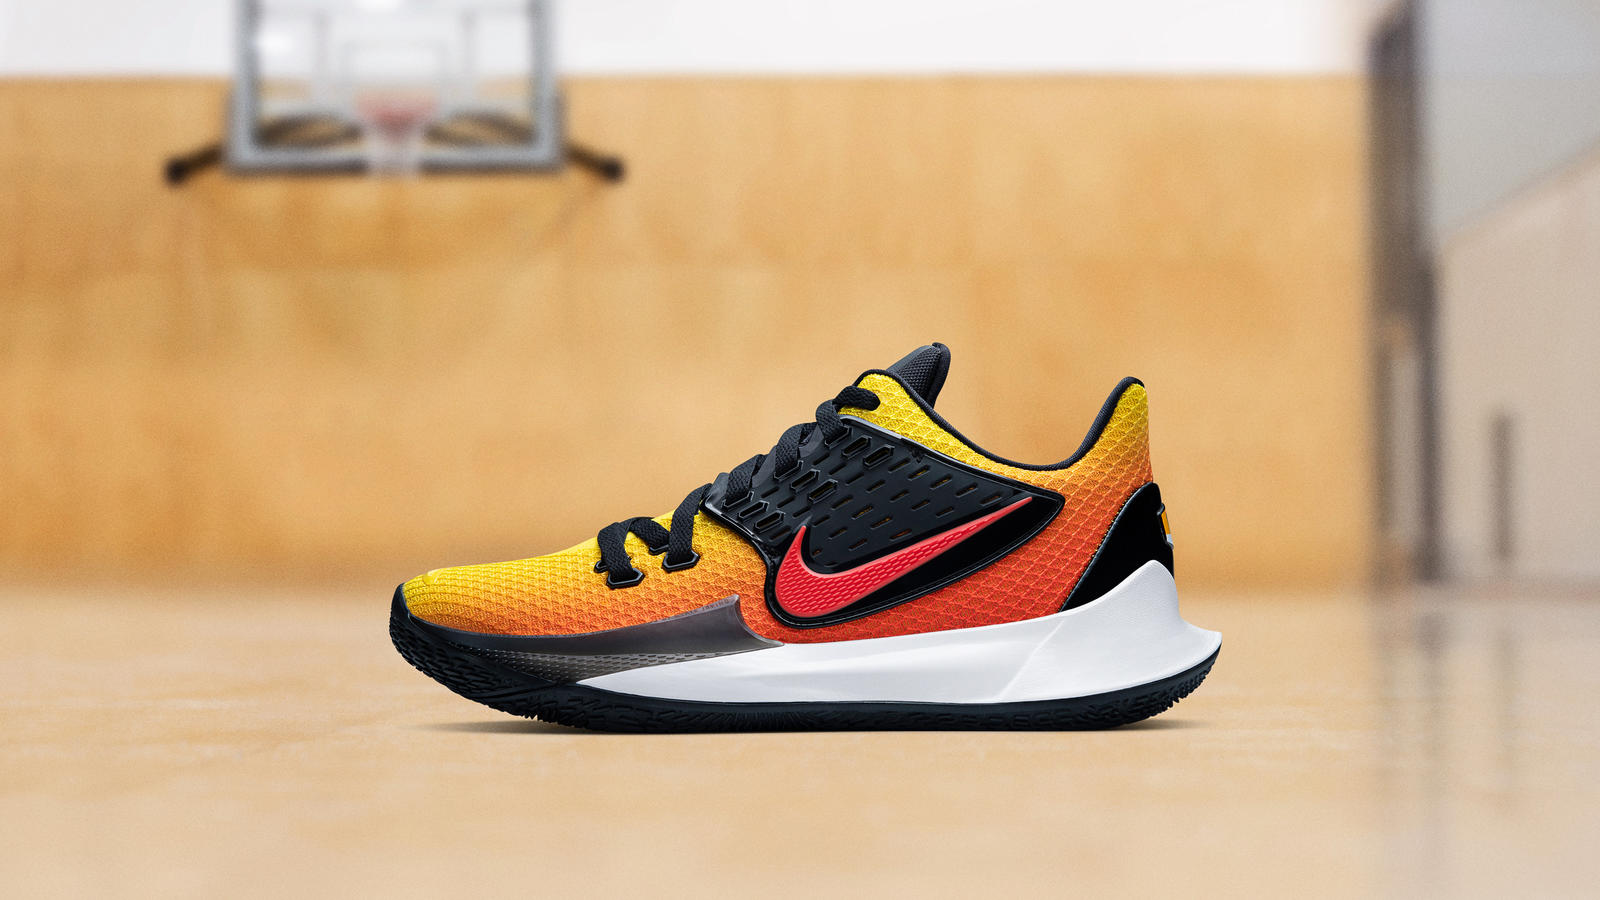 NIke Kyrie Low 2 Team Orange Official Images and Release Date 2